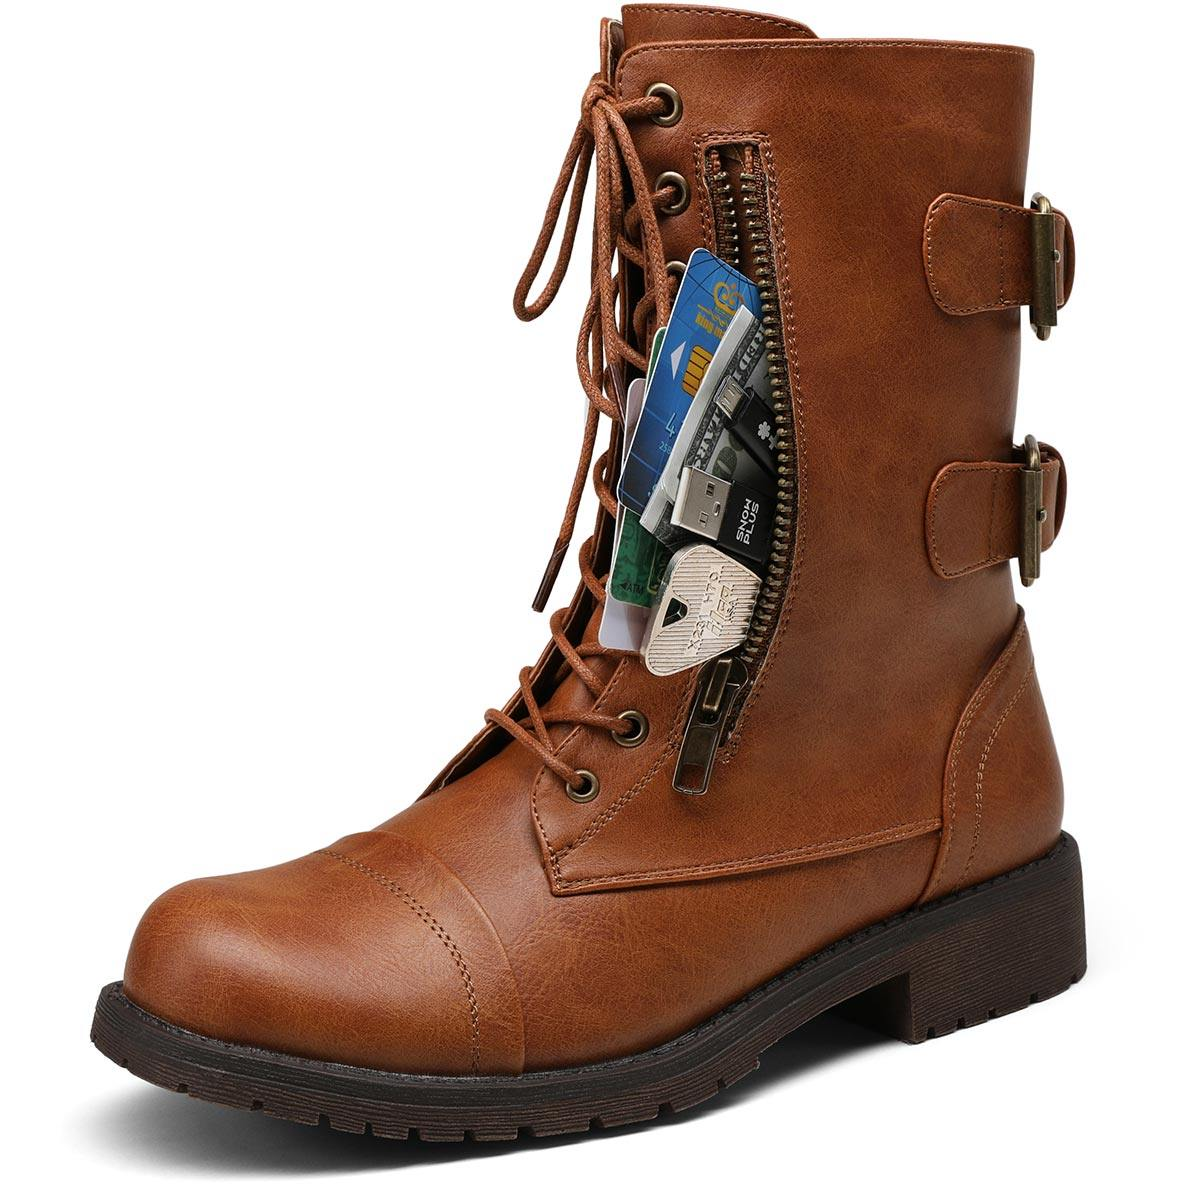 Mid Calf Women Boots Wallet Pocket | Vepose - Top shoes club